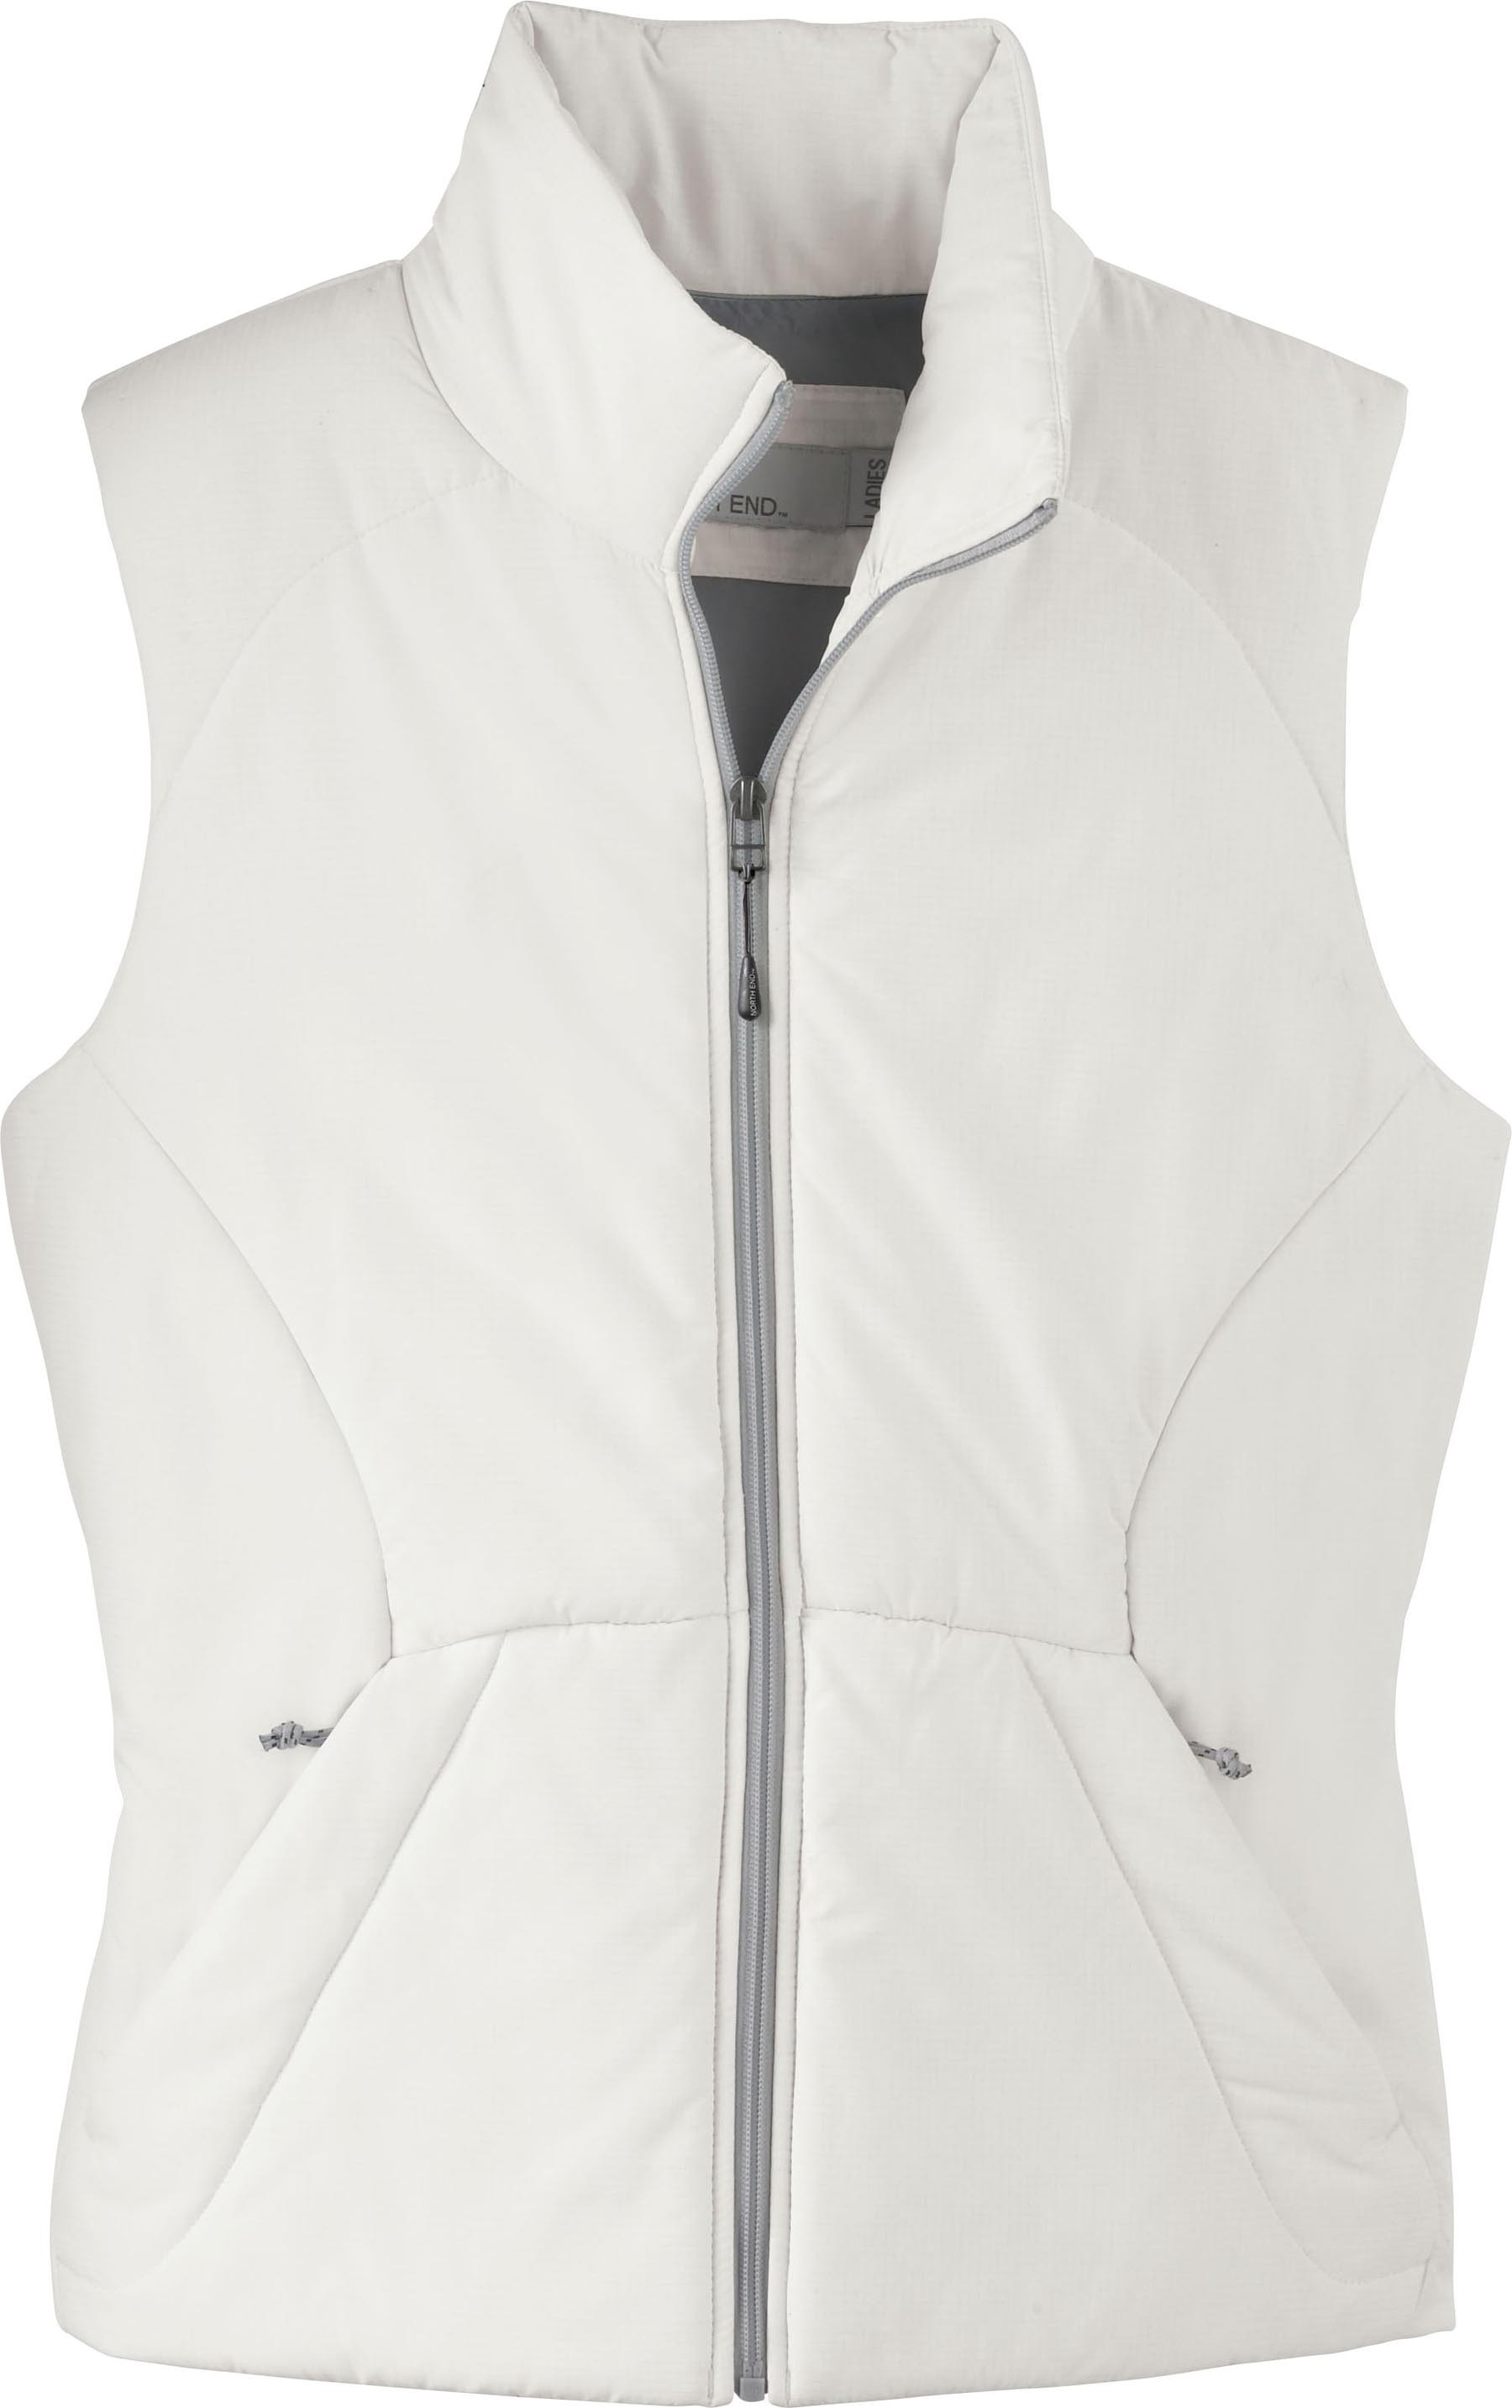 Ash City UTK 1 Warm.Logik 78081 - Ladies' Polyester Ripstop Insulated Vest